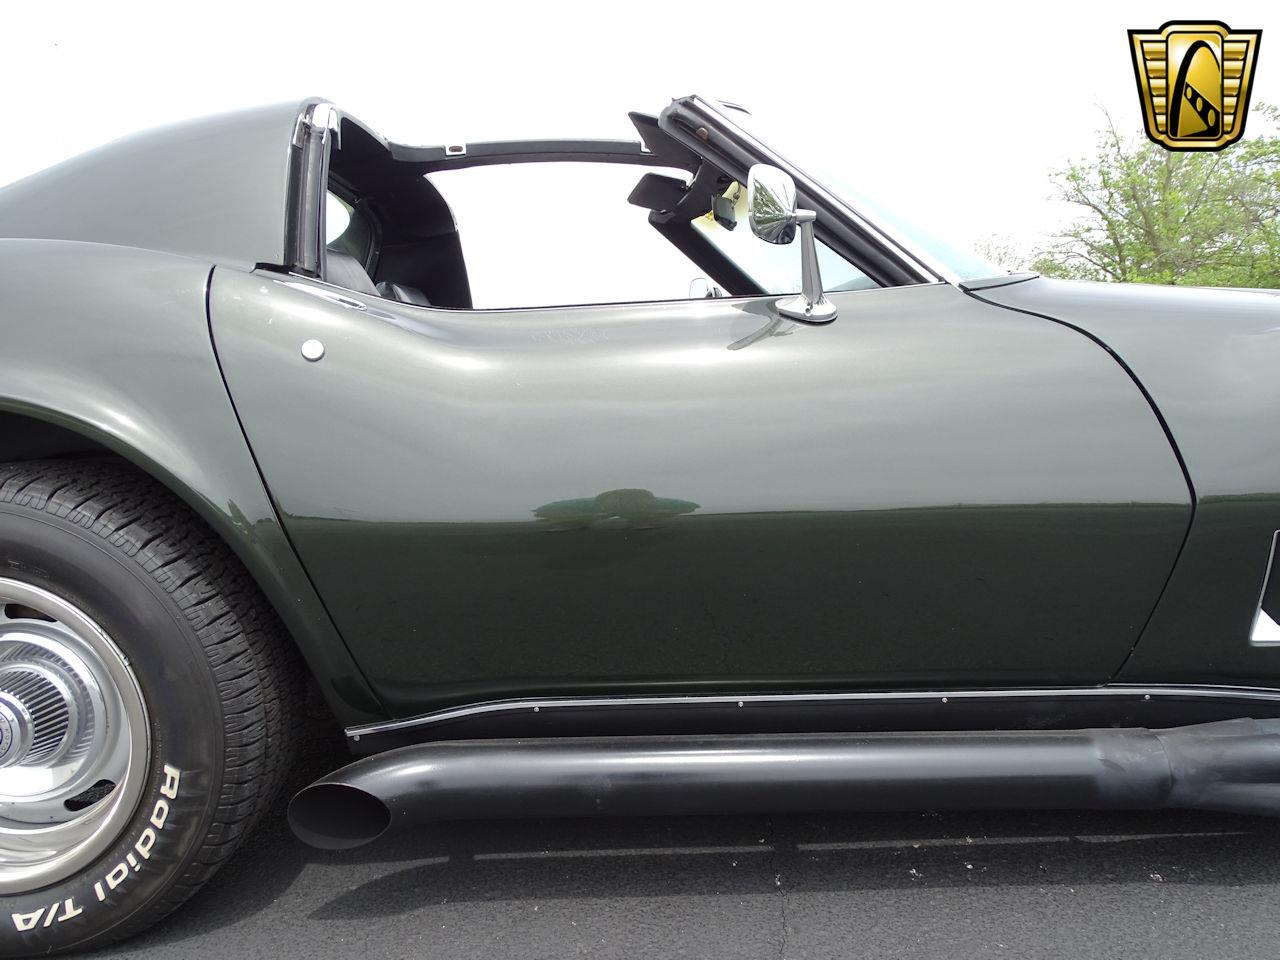 Large Picture of 1969 Chevrolet Corvette located in Indiana - $32,595.00 Offered by Gateway Classic Cars - Indianapolis - L6RX